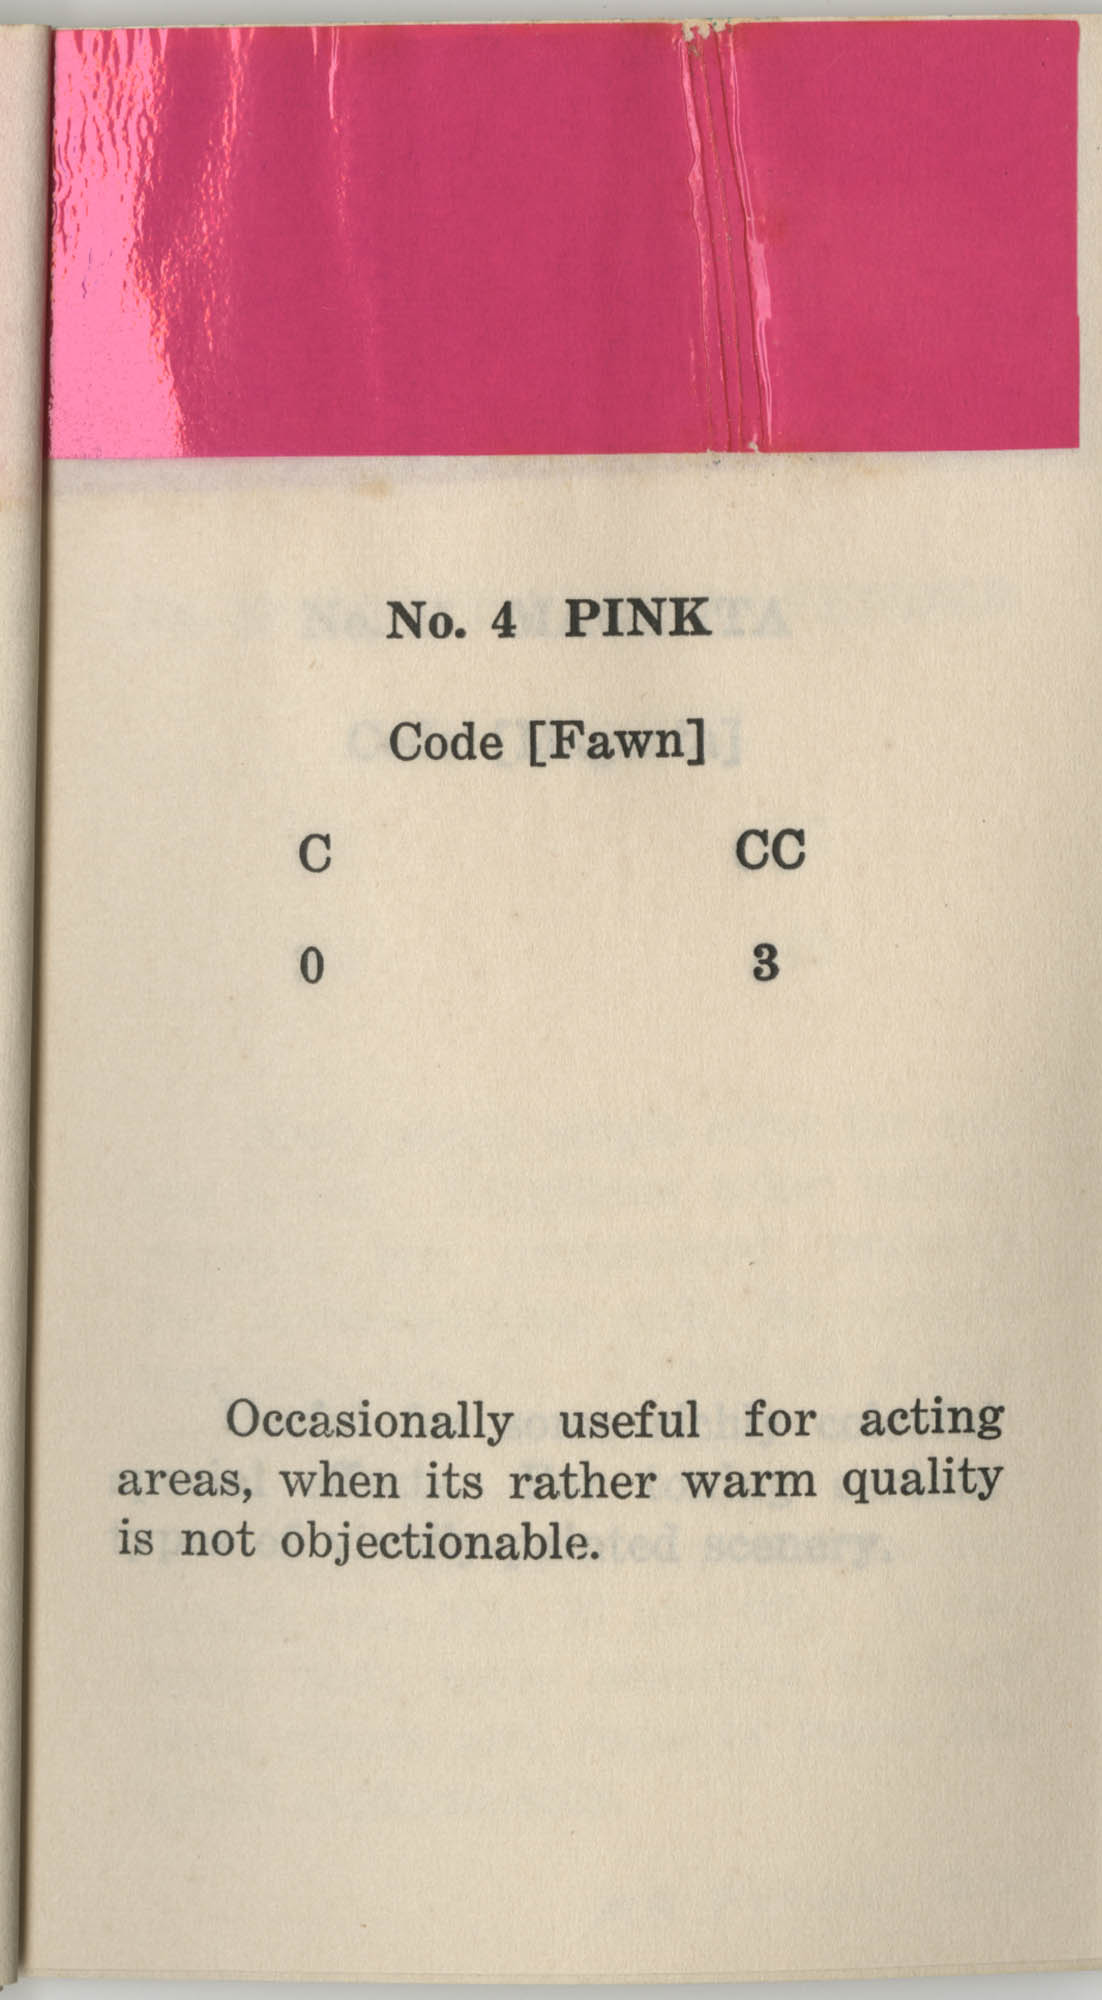 Colored Gelatine for the Theatre School and Community Playhouse, Page 7